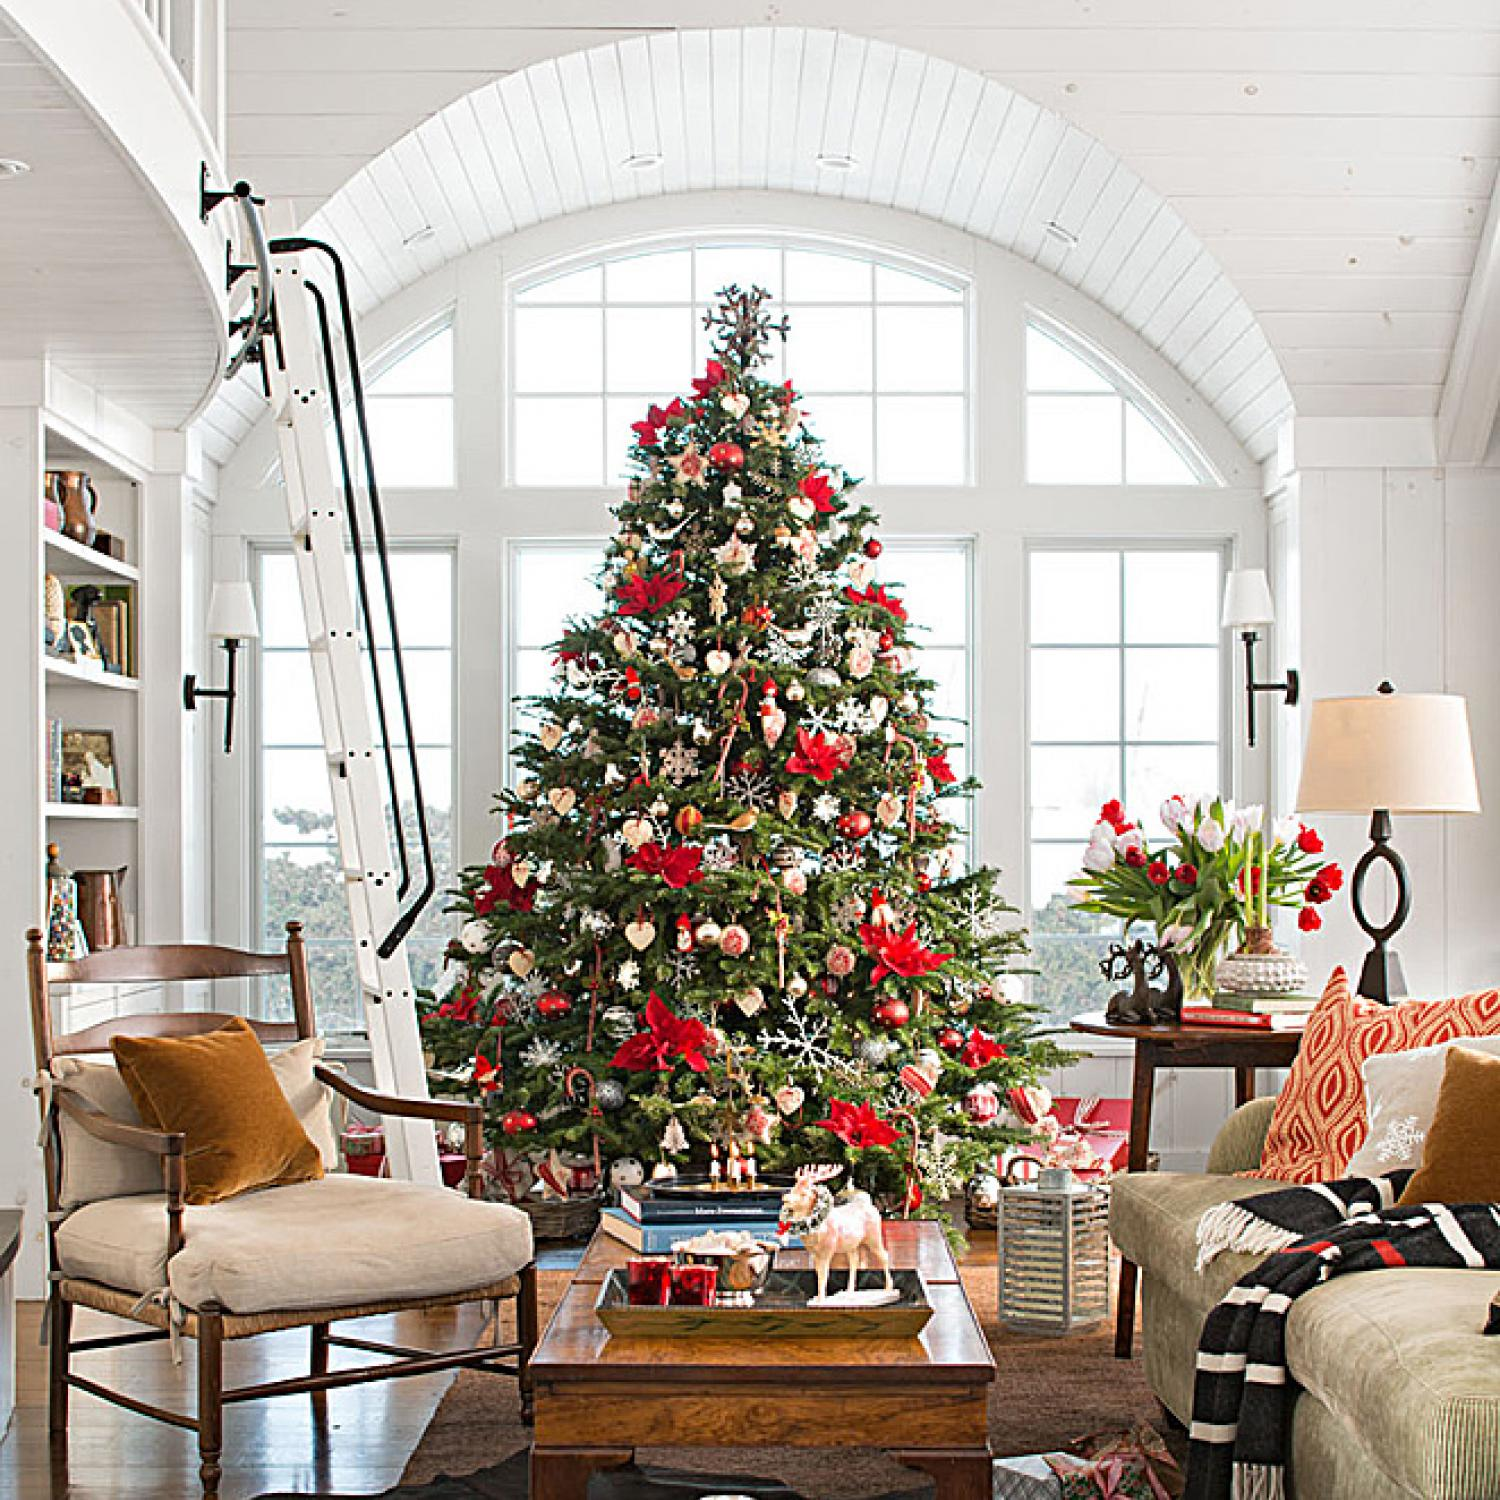 Snowy vermont home ready for christmas traditional home for Traditional home decor